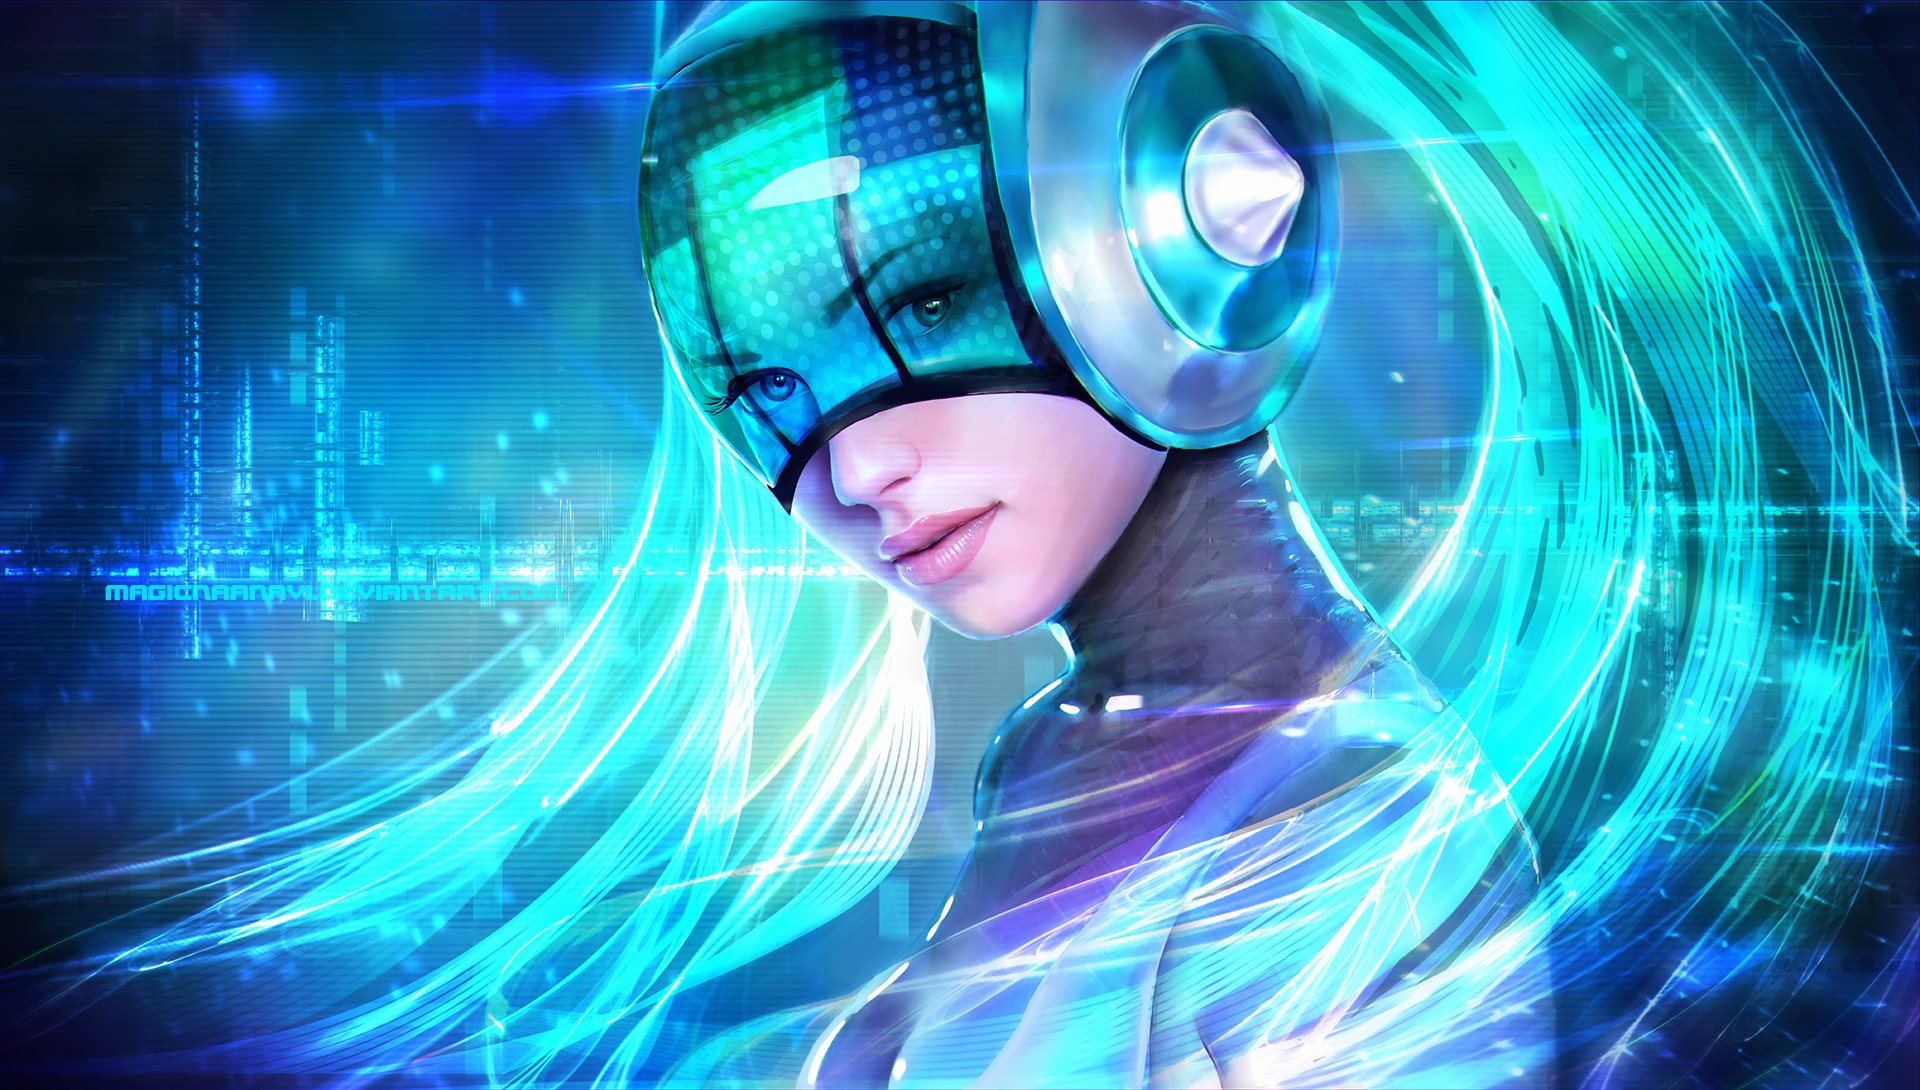 Video Game - League Of Legends  Sona (League Of Legends) Fantasy Woman Girl Blue Hair Futuristic Wallpaper